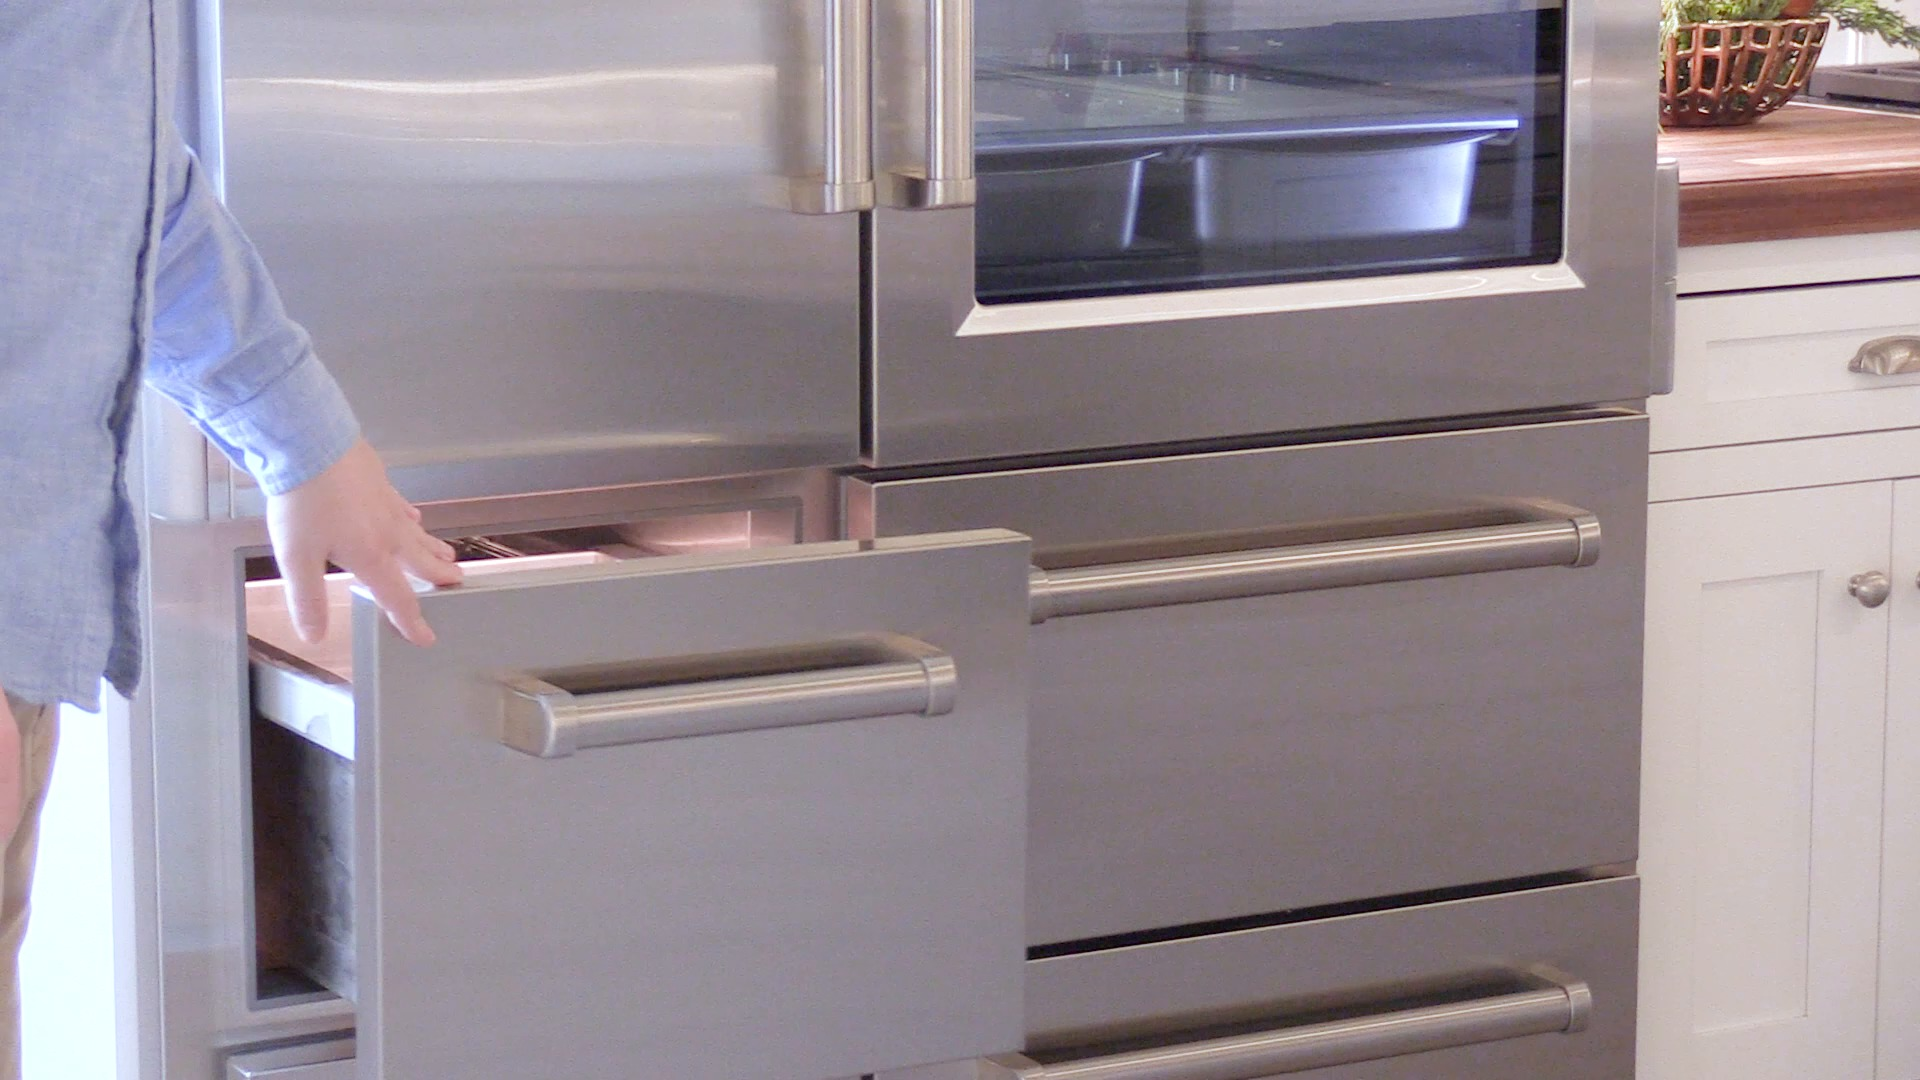 cu door of ft drawer single refrigerator unique with freezer kenmore bottom